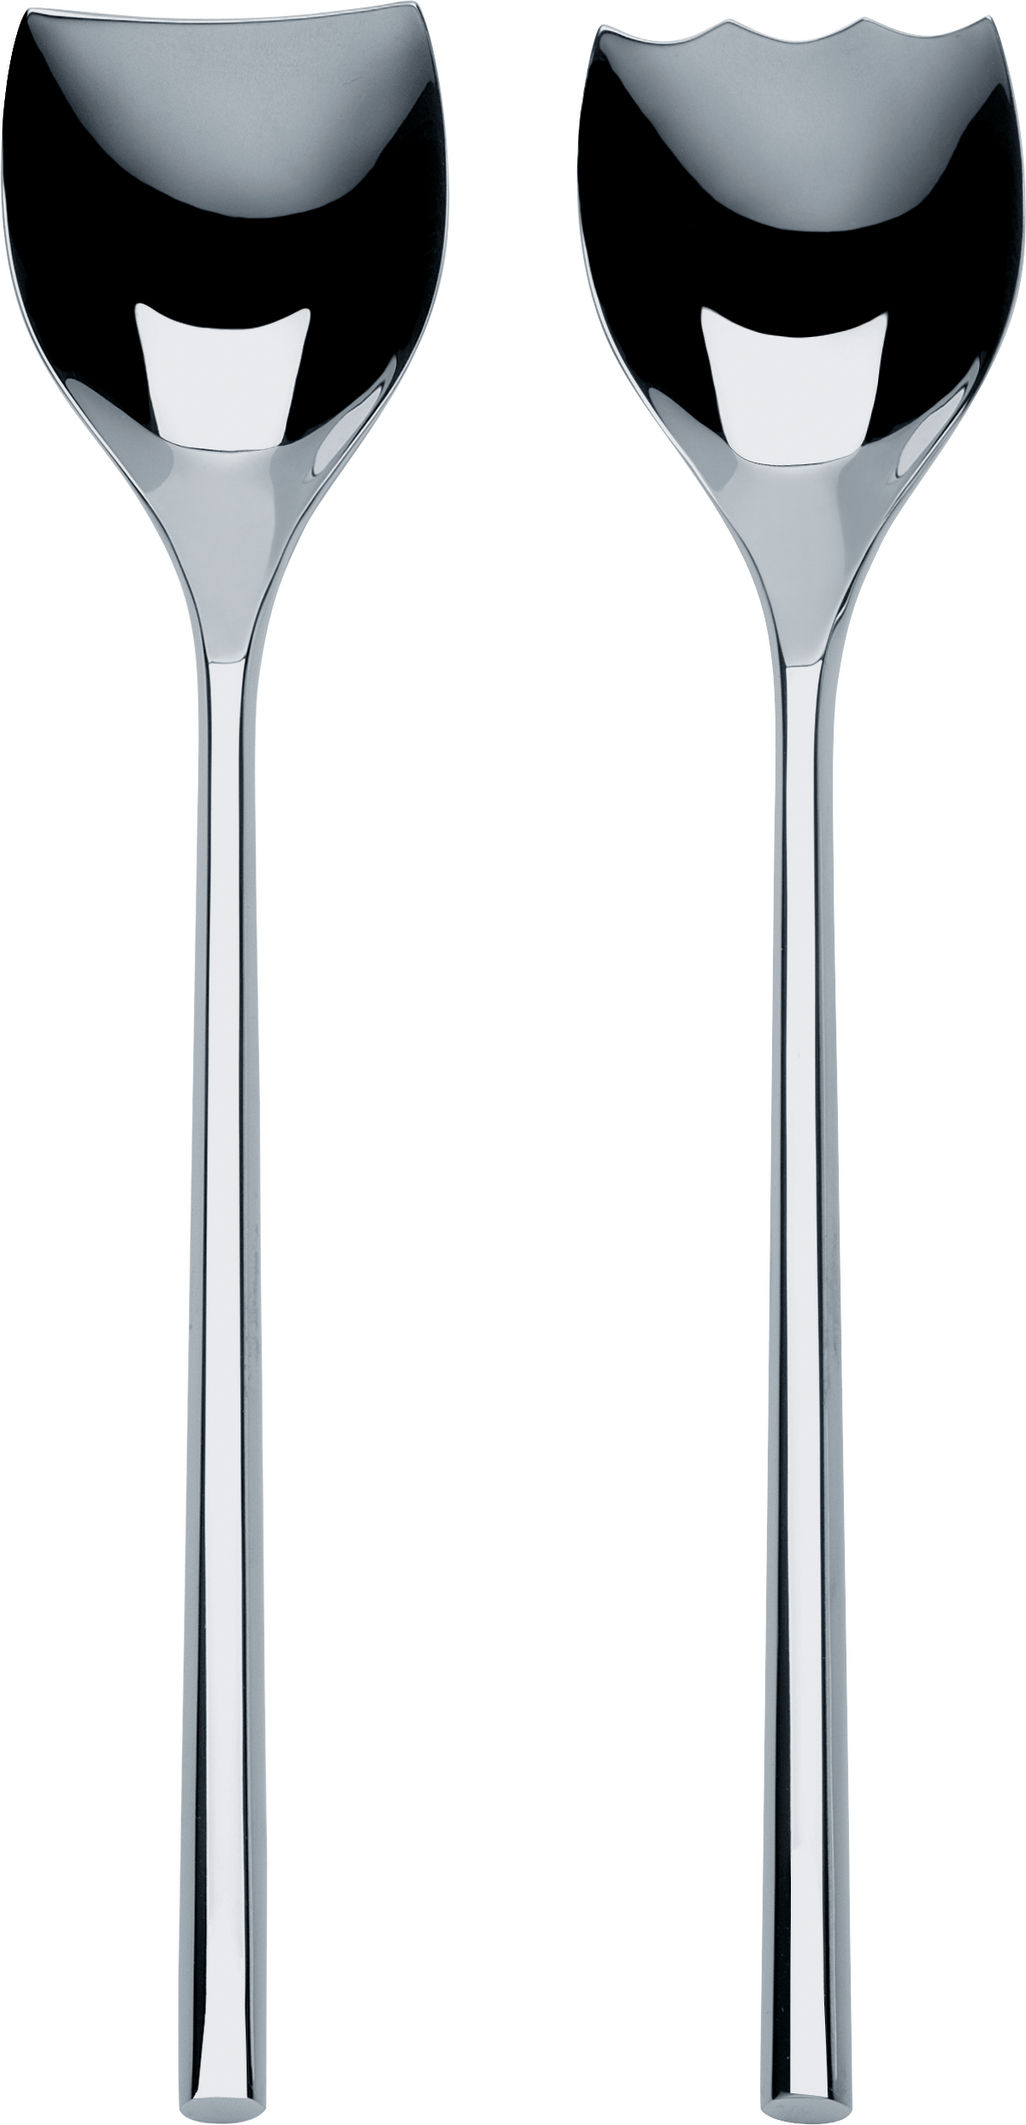 Tableware - Serving Cutlery - Mu Salad servers by Alessi - Steel - Stainless steel 18/10